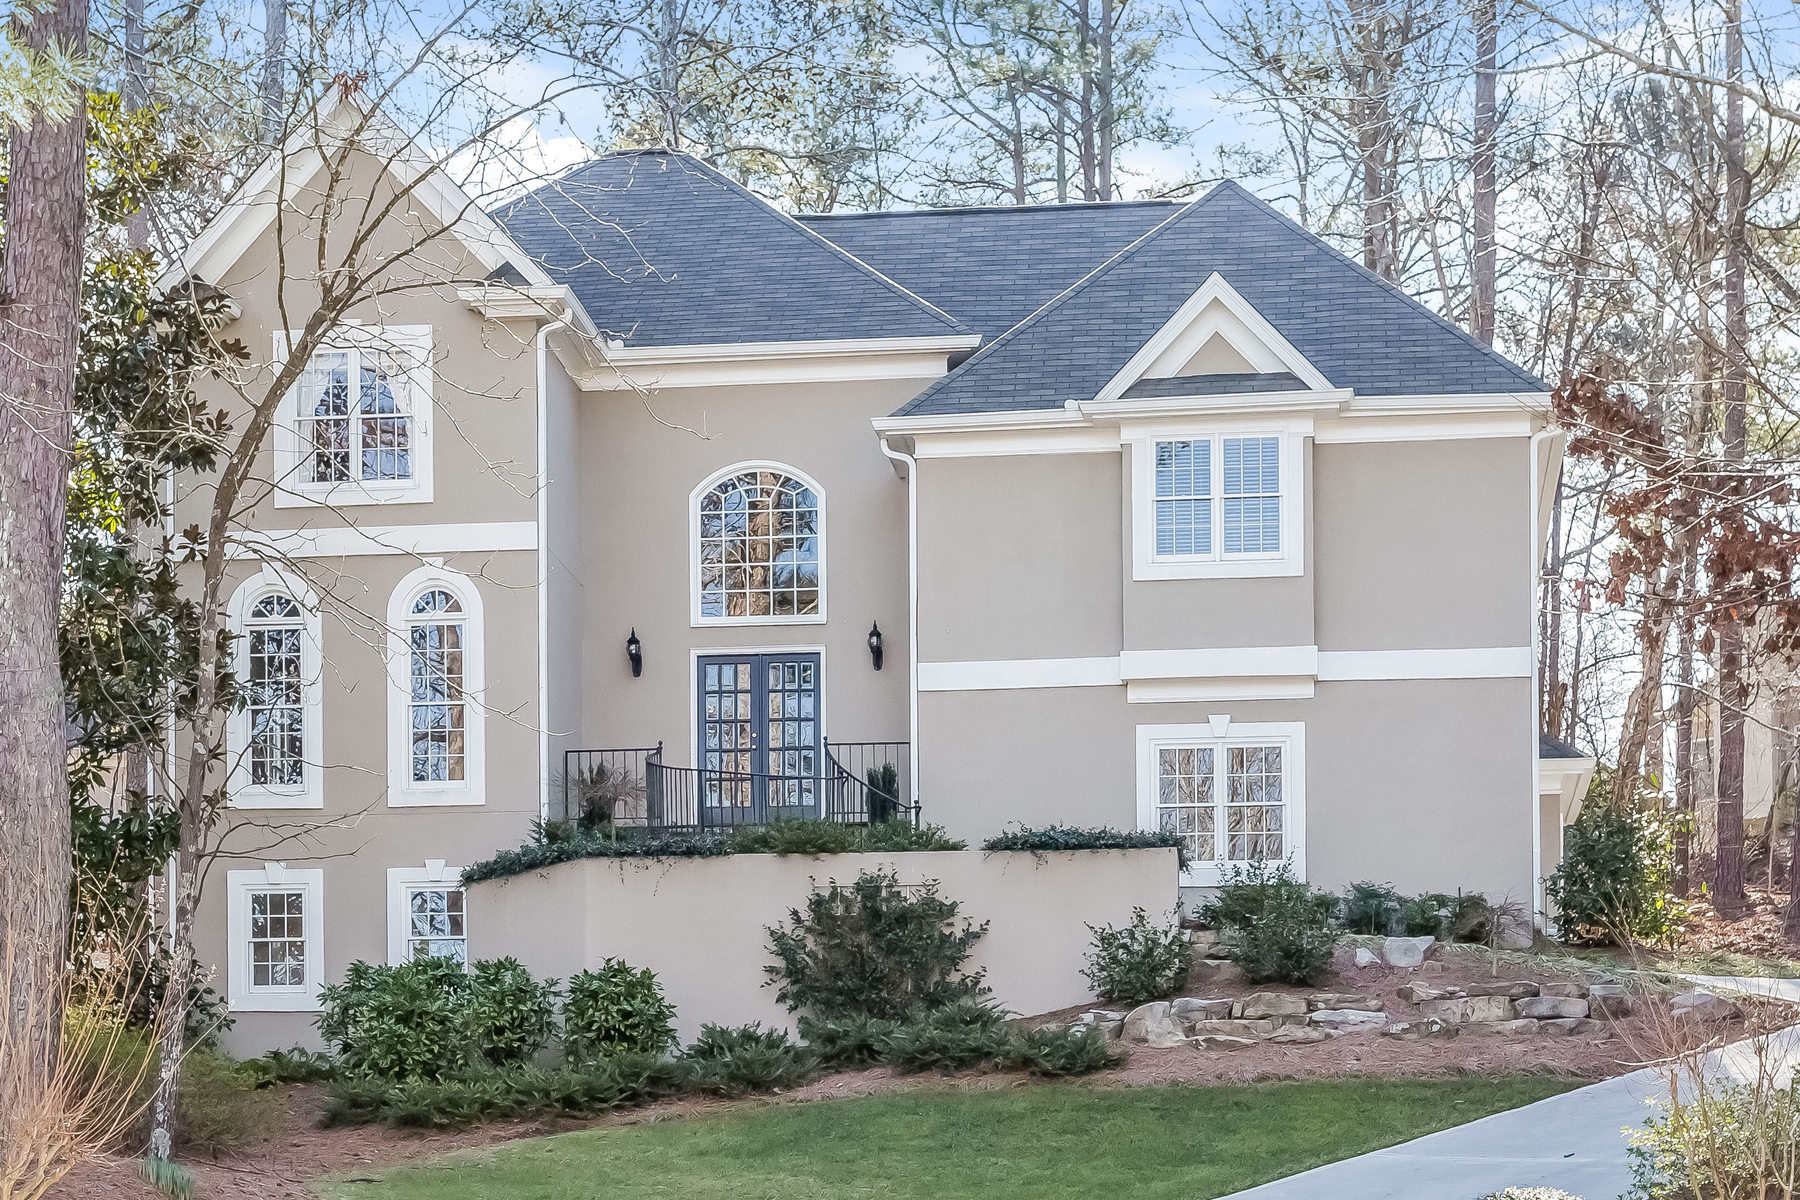 Single Family Home for Active at Entertainer's Delight 796 Asheview Court Marietta, Georgia 30068 United States